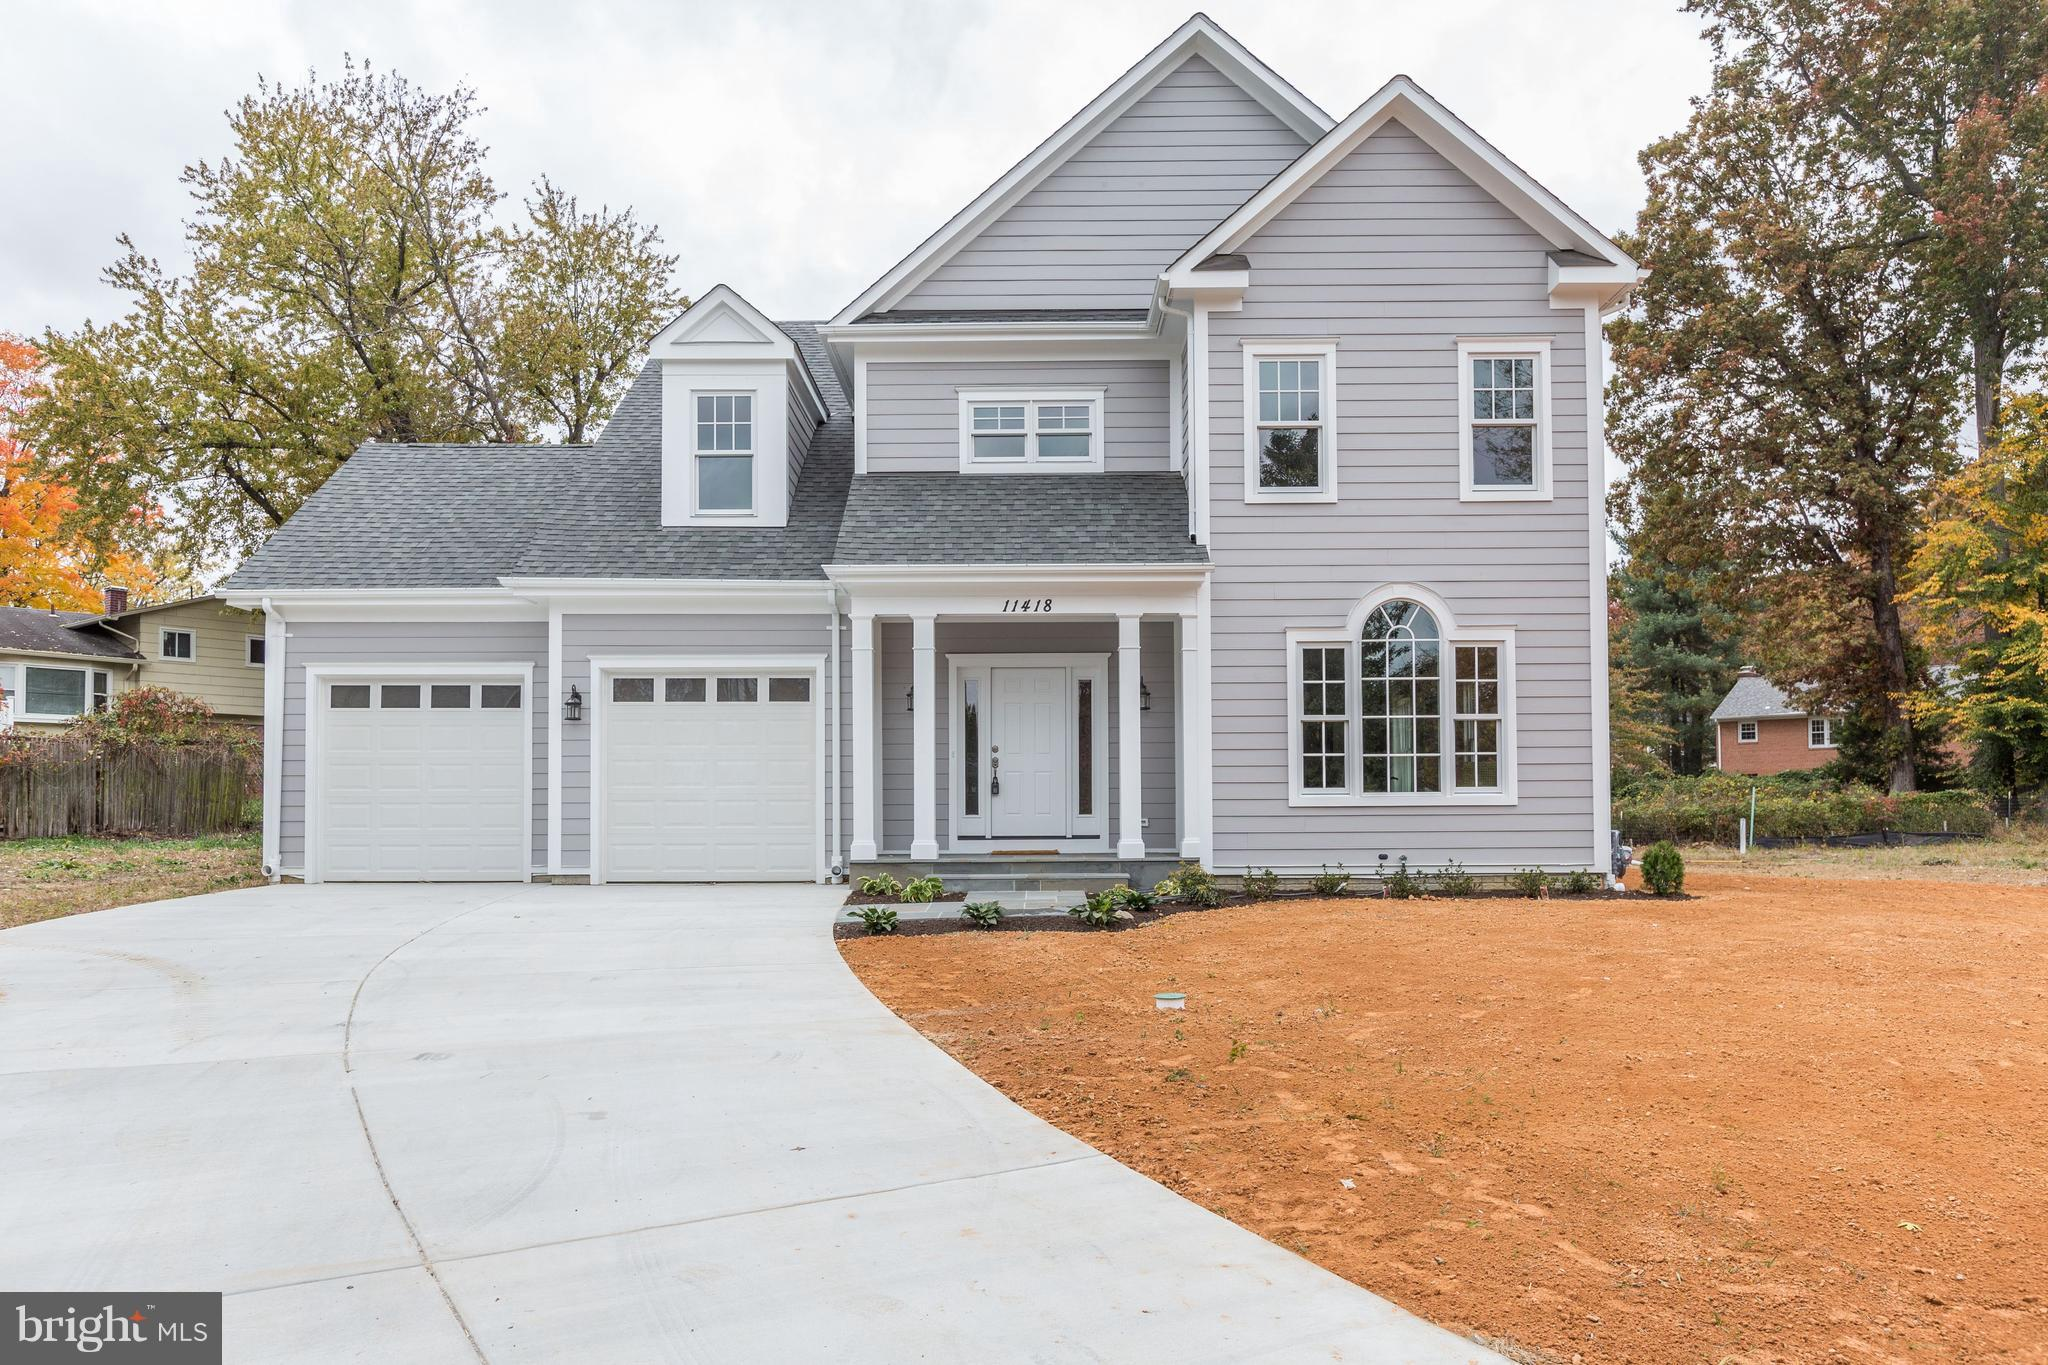 11418 NAIRN ROAD, SILVER SPRING, MD 20902